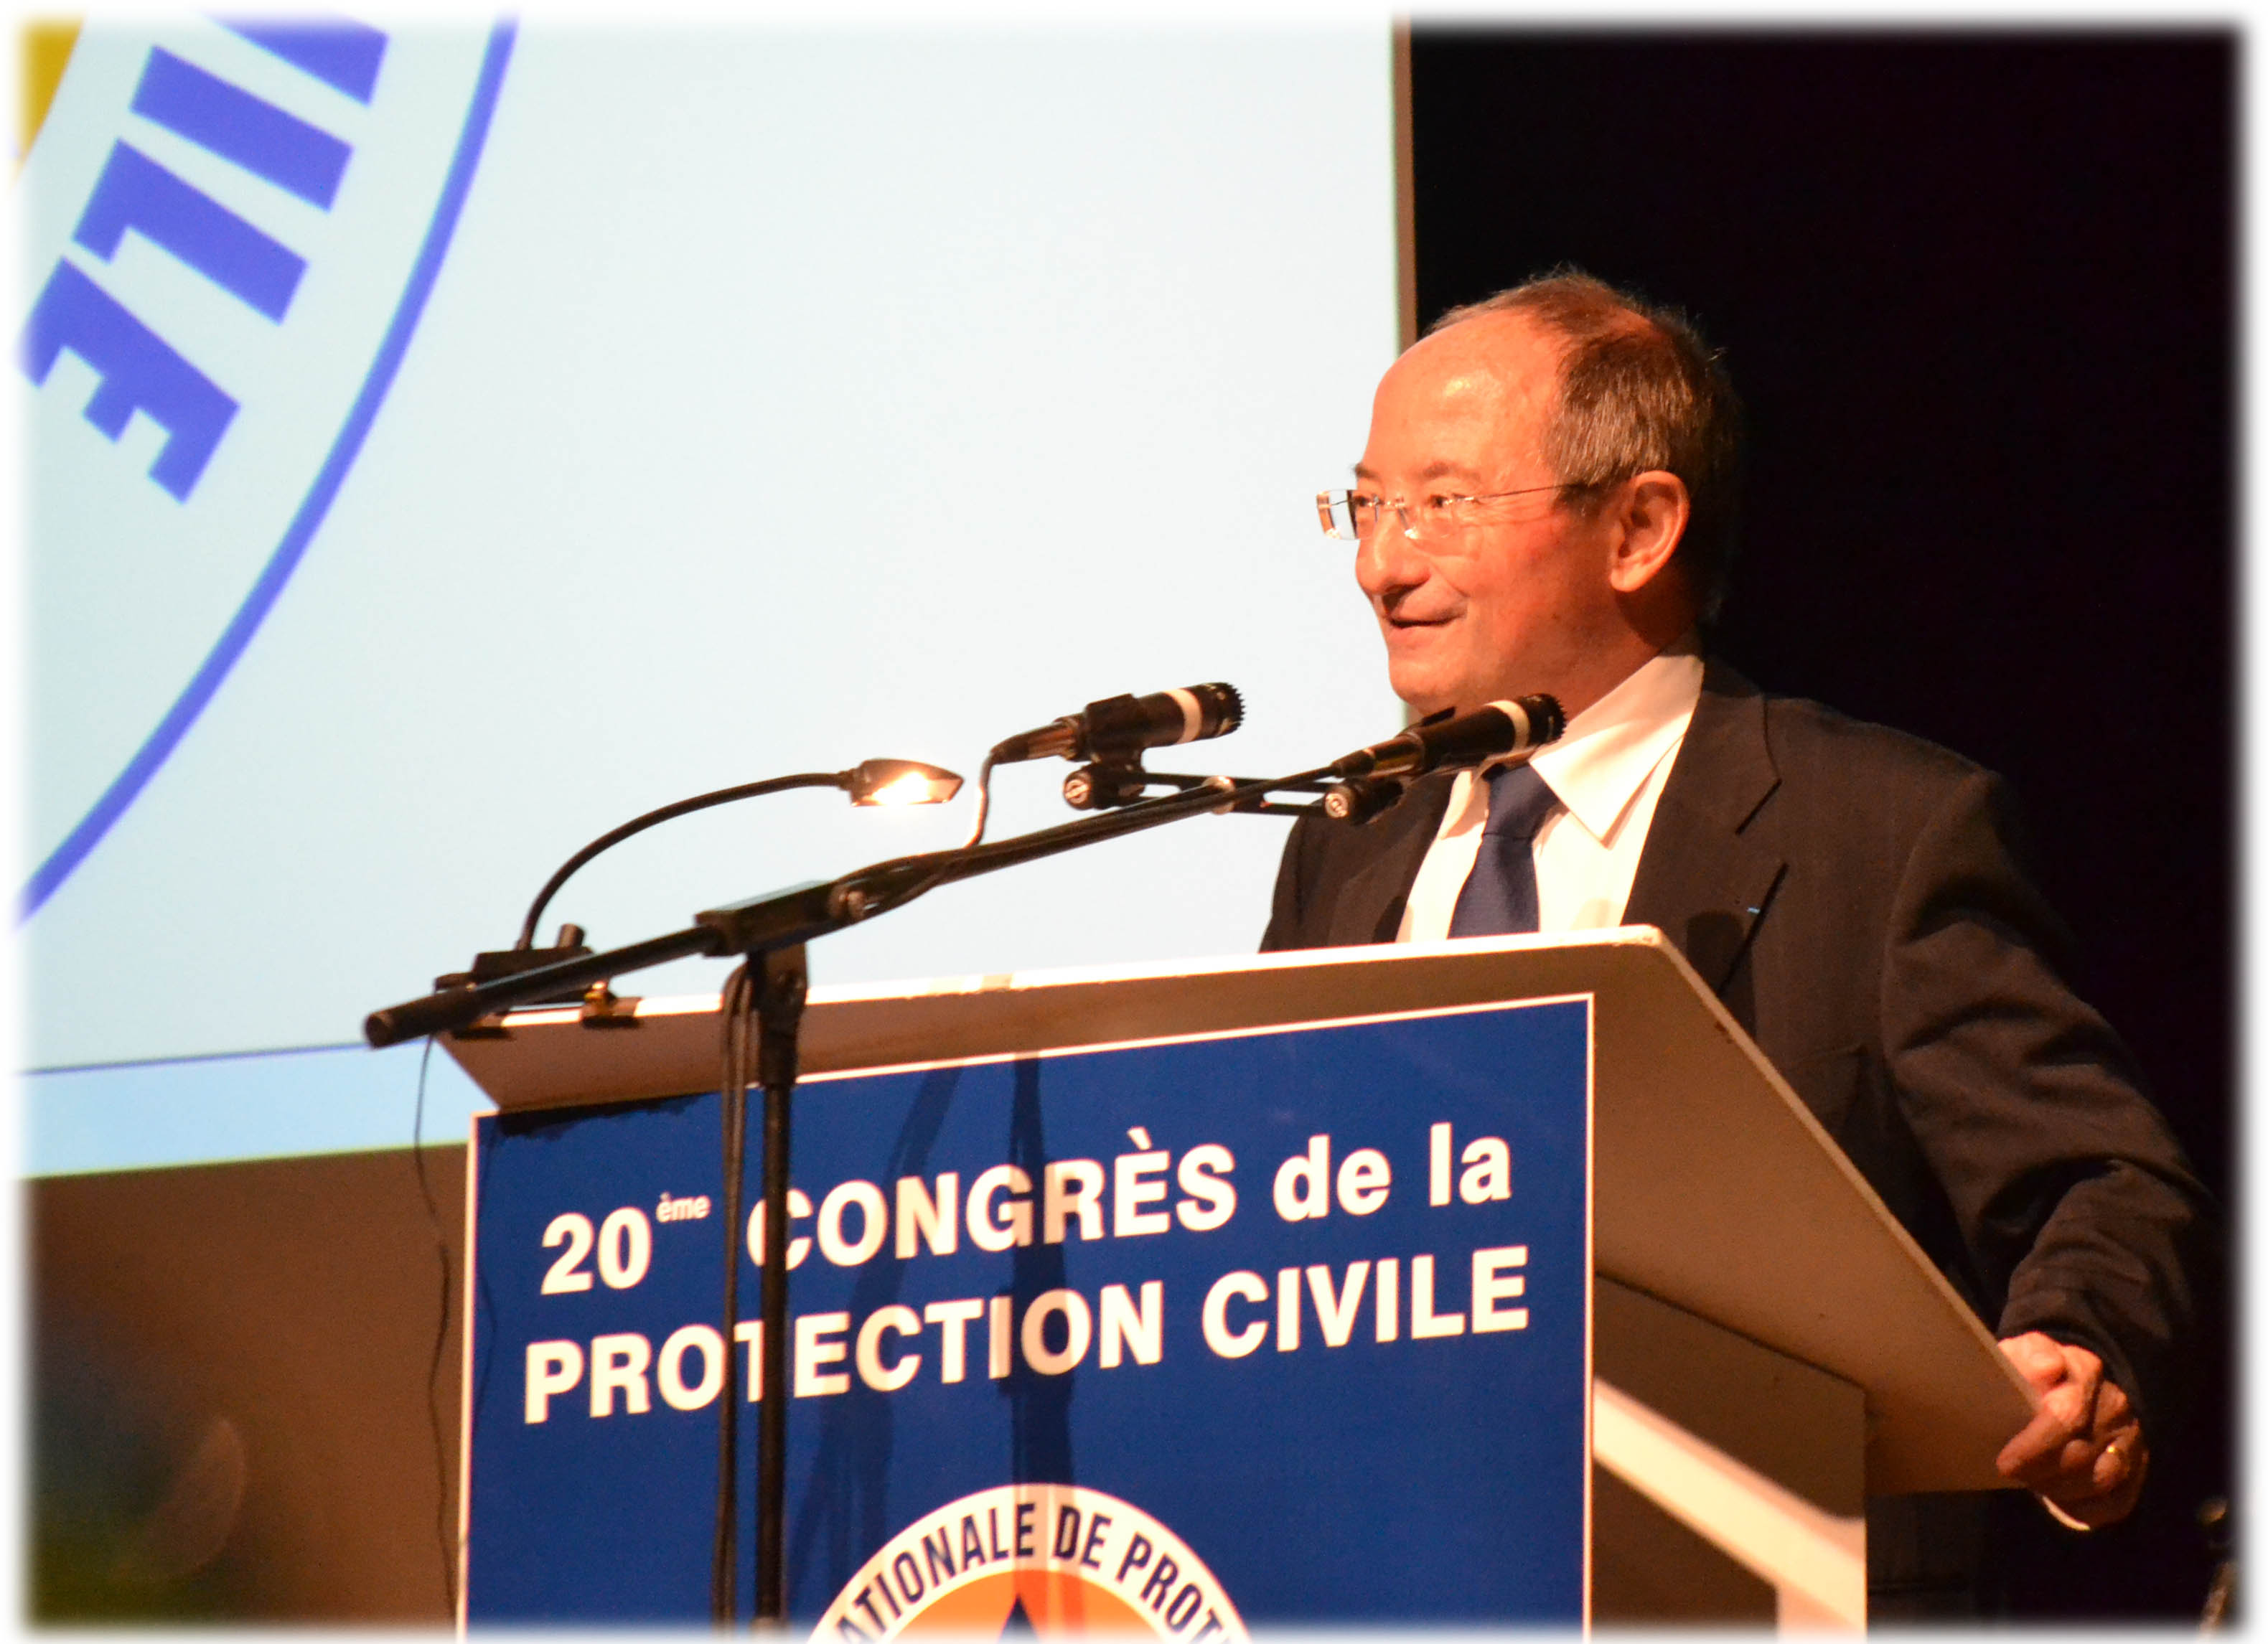 2012 - Président de la Protection Civile - Christian WAX